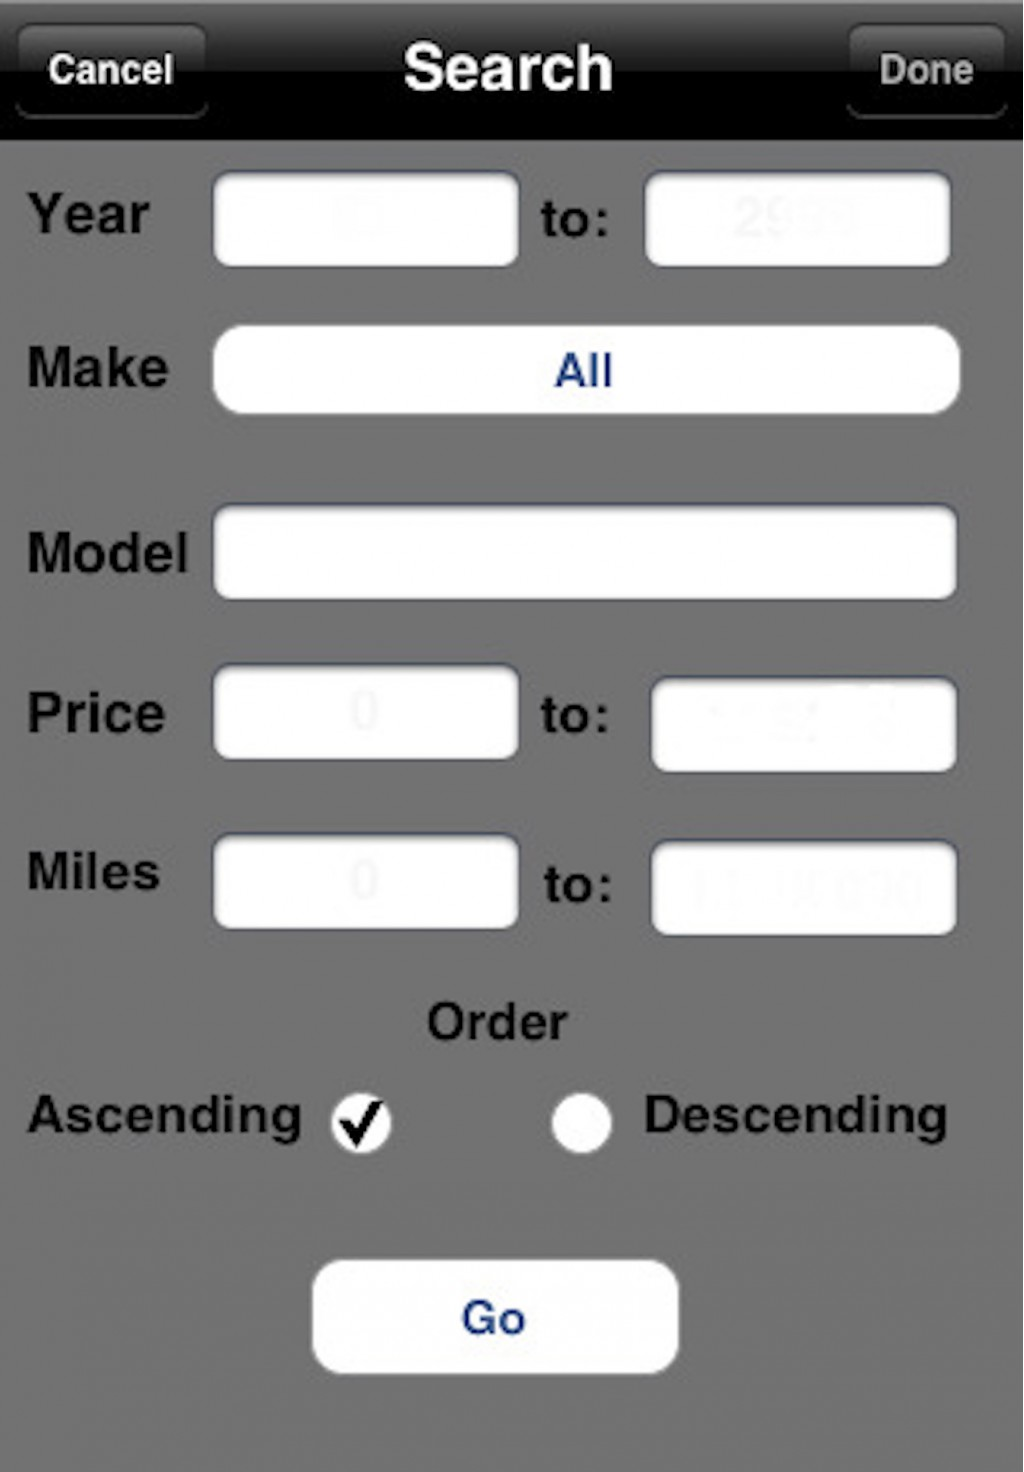 Car Tell Auction Prices iPhone App Helps Consumers Avoid Overpaying